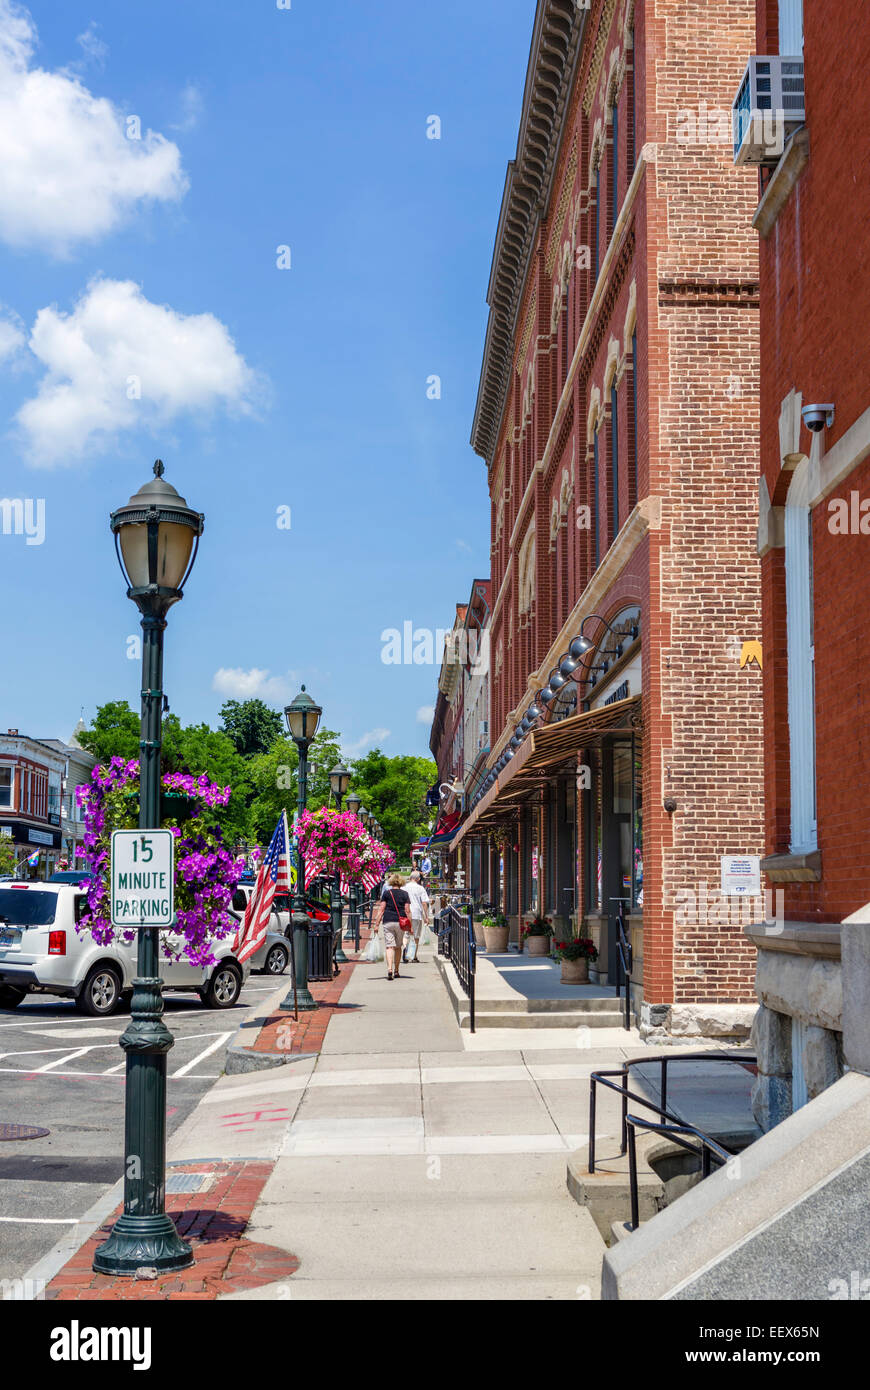 Main Street in Lee, Berkshire County, Massachusetts, USA - Stock Image